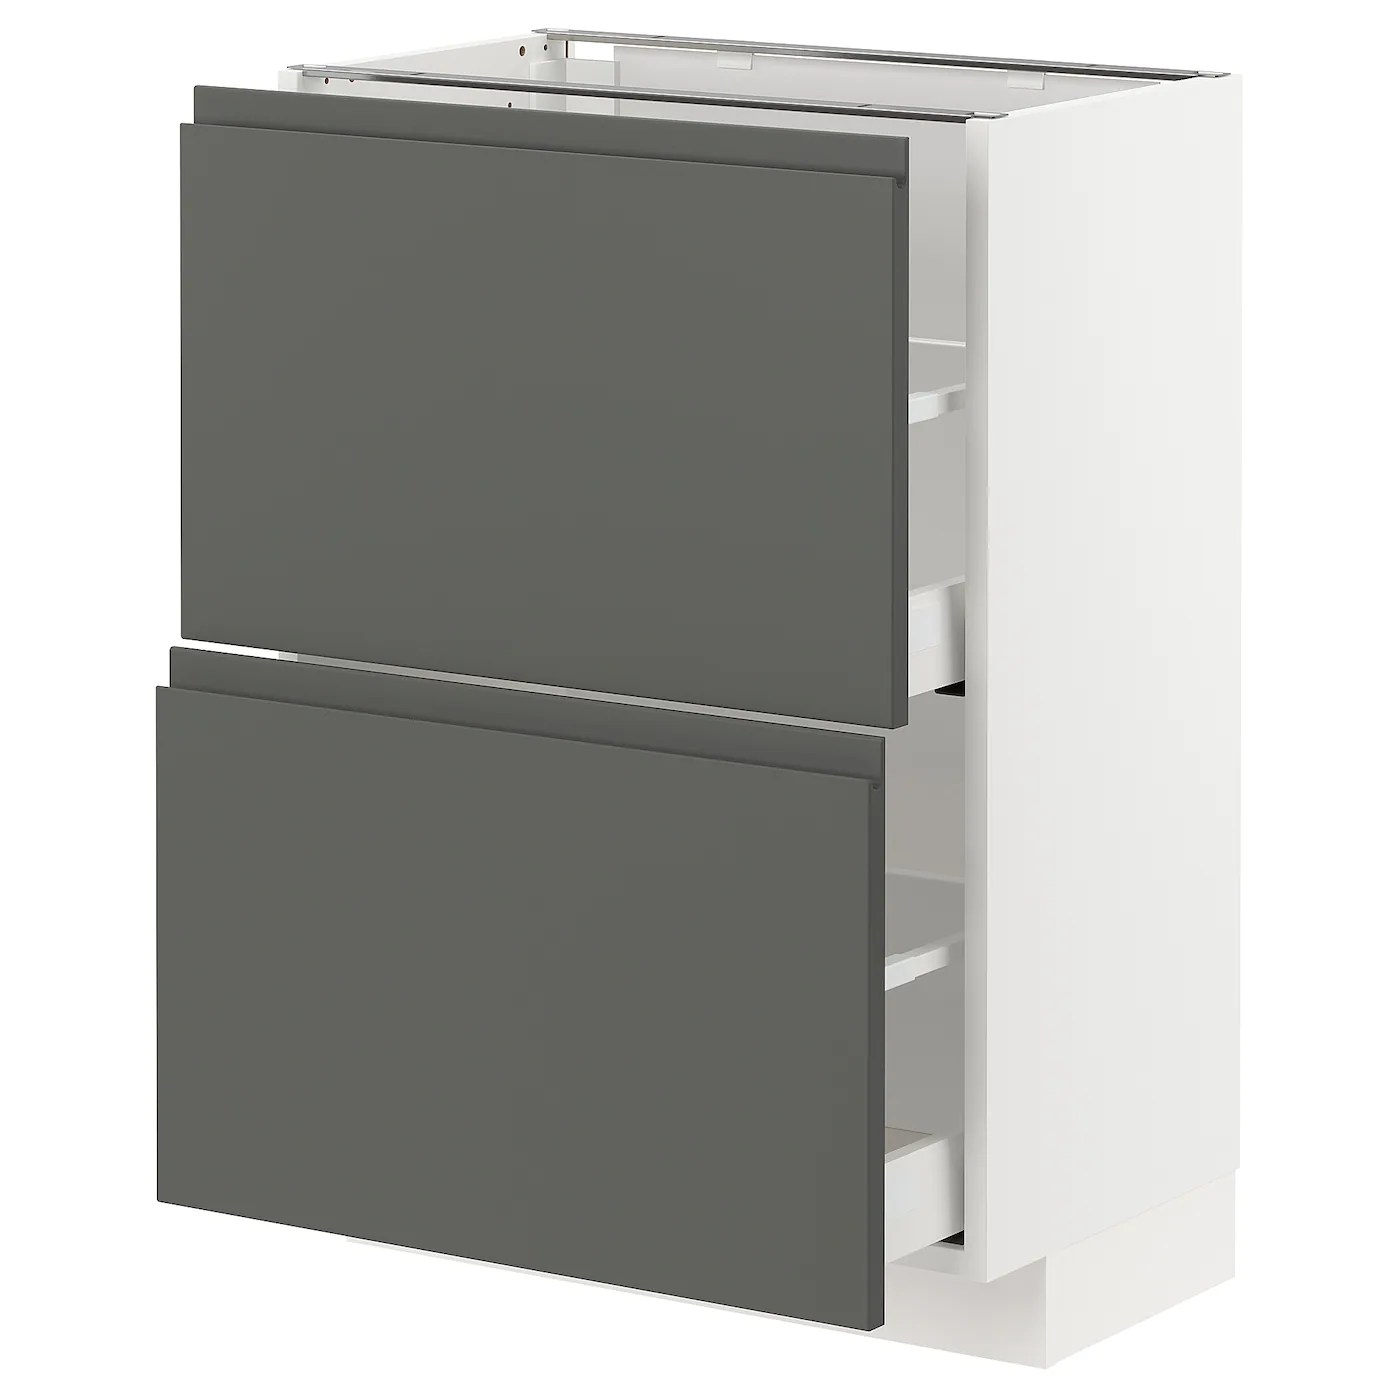 Unterschrank Küche Ikea Metod / Maximera Base Cabinet With 2 Drawers - White/voxtorp Dark Grey 60x37 Cm